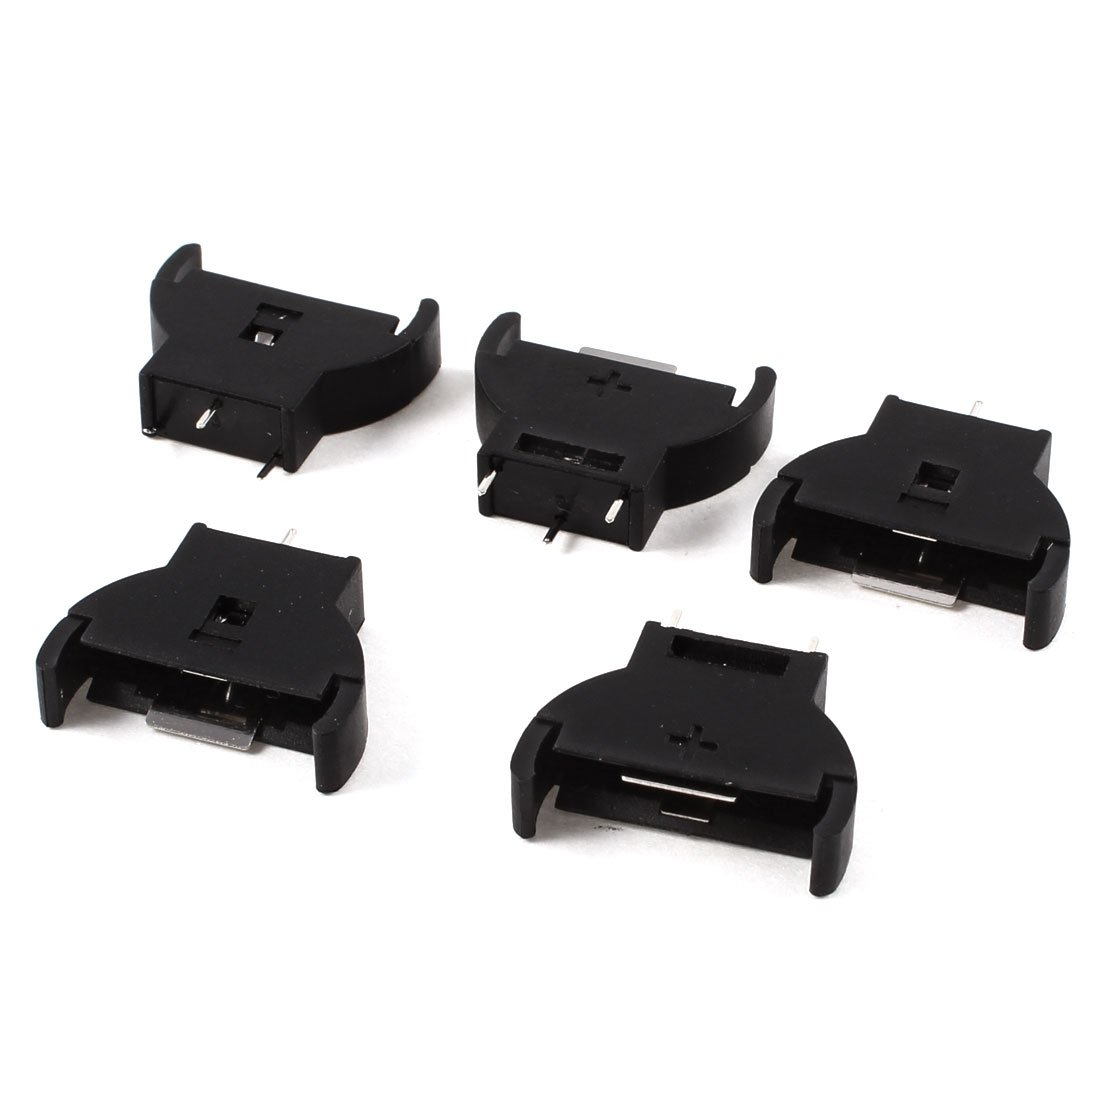 Brand New 5 Pcs Black Plastic CR2032 2032 3V Cell Coin Battery Socket Holder Case Battery Boxes